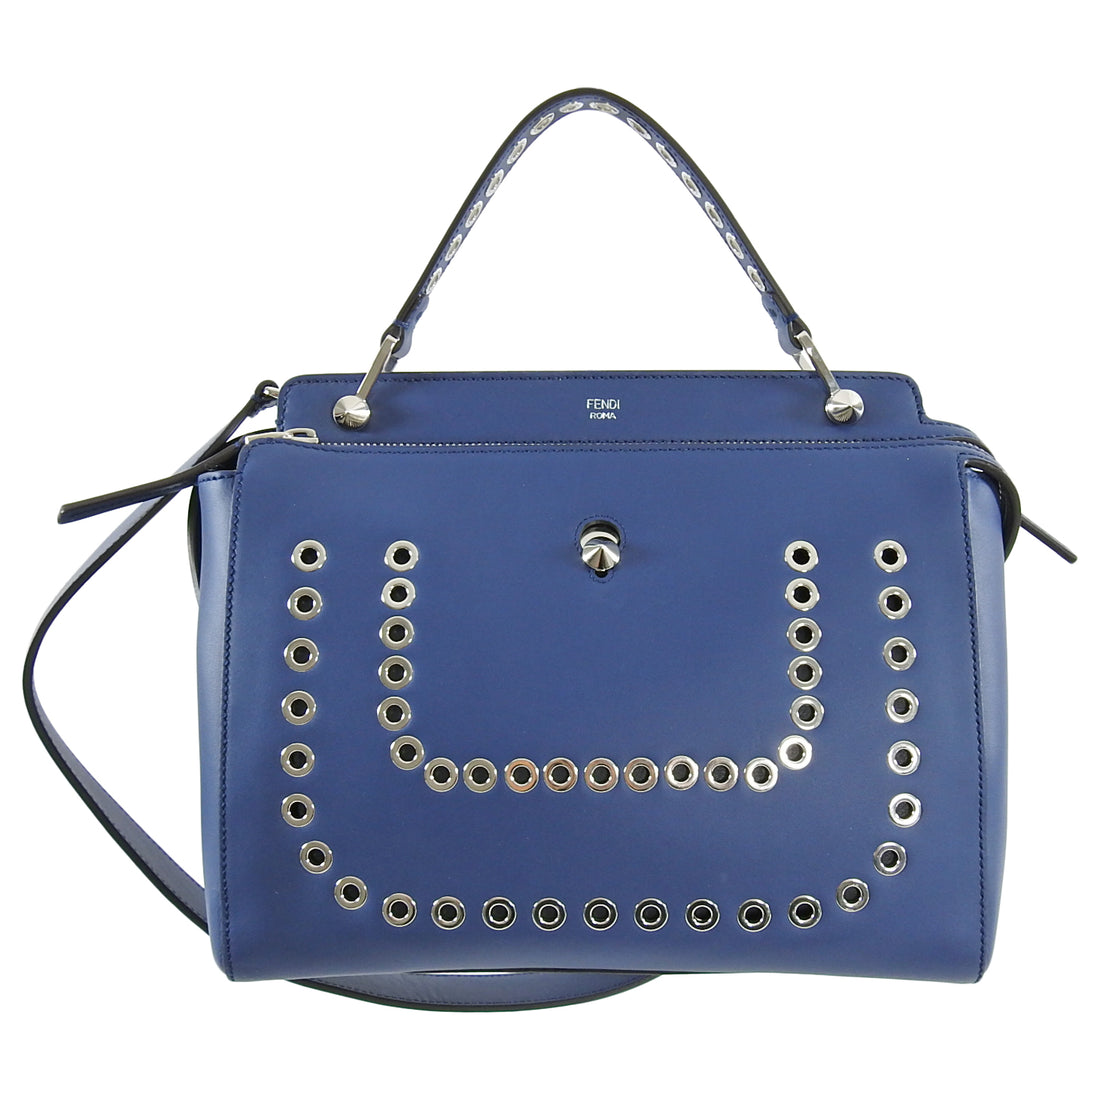 Fendi Blue Leather DotCom Grommet Satchel Bag